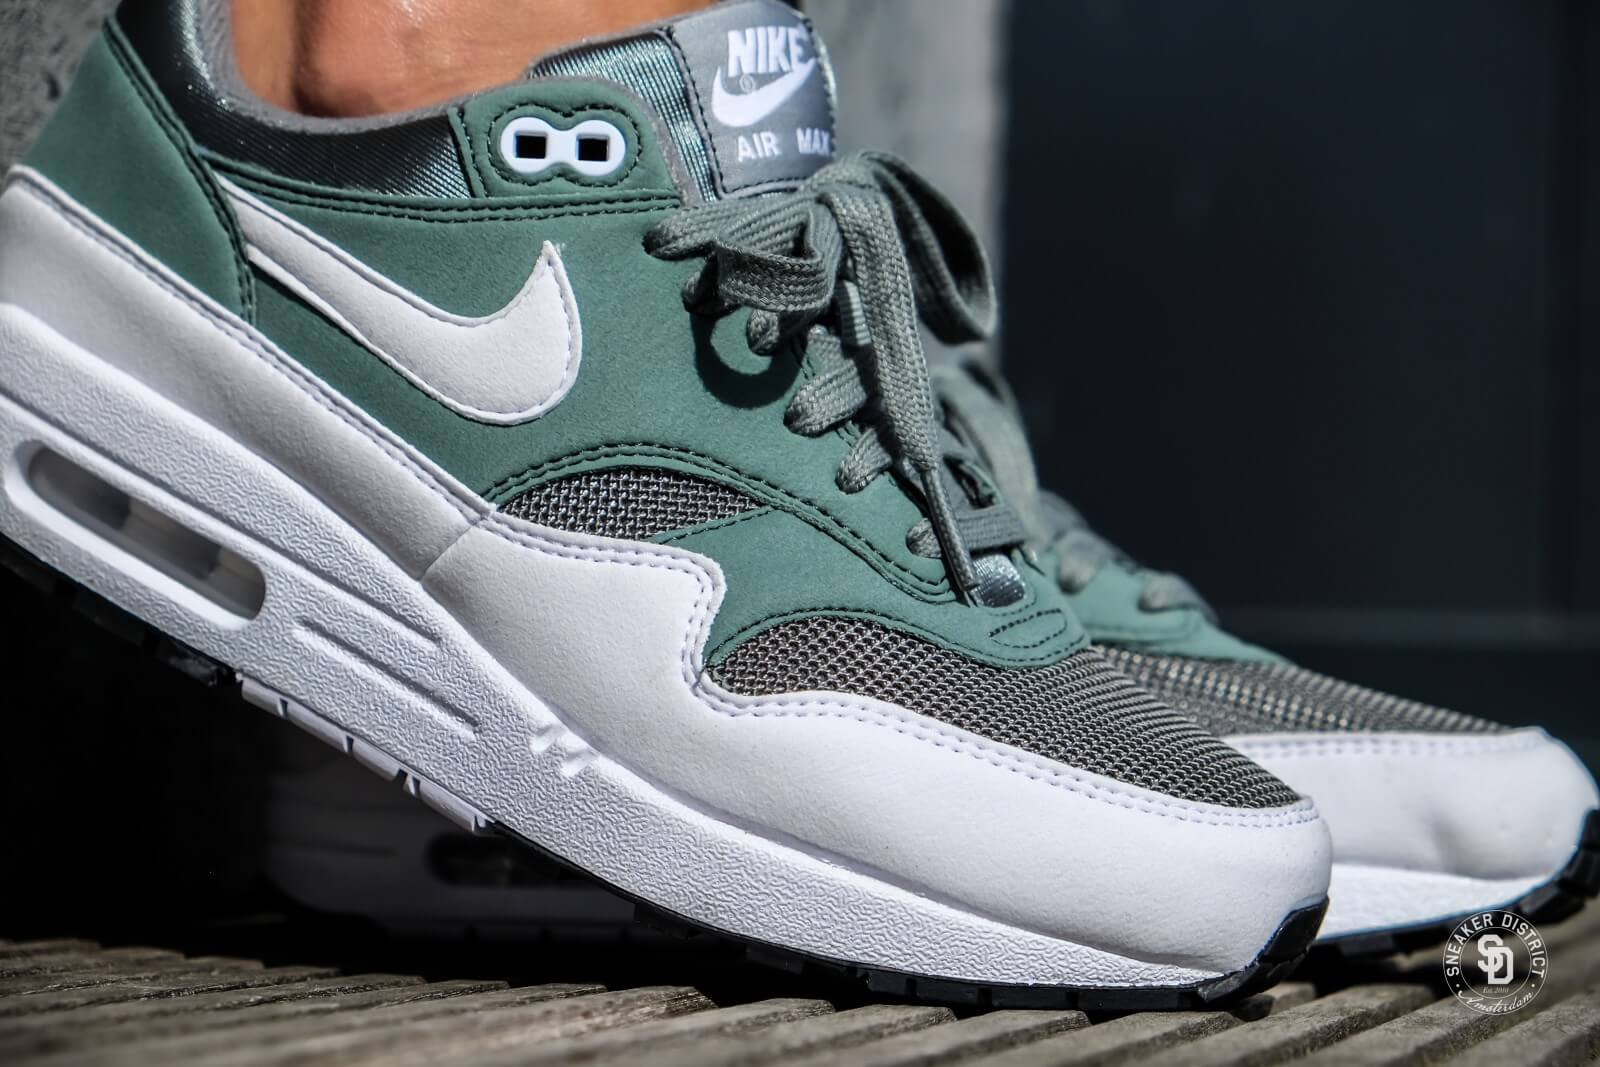 Nike Women's Air Max 1 Clay Green/White